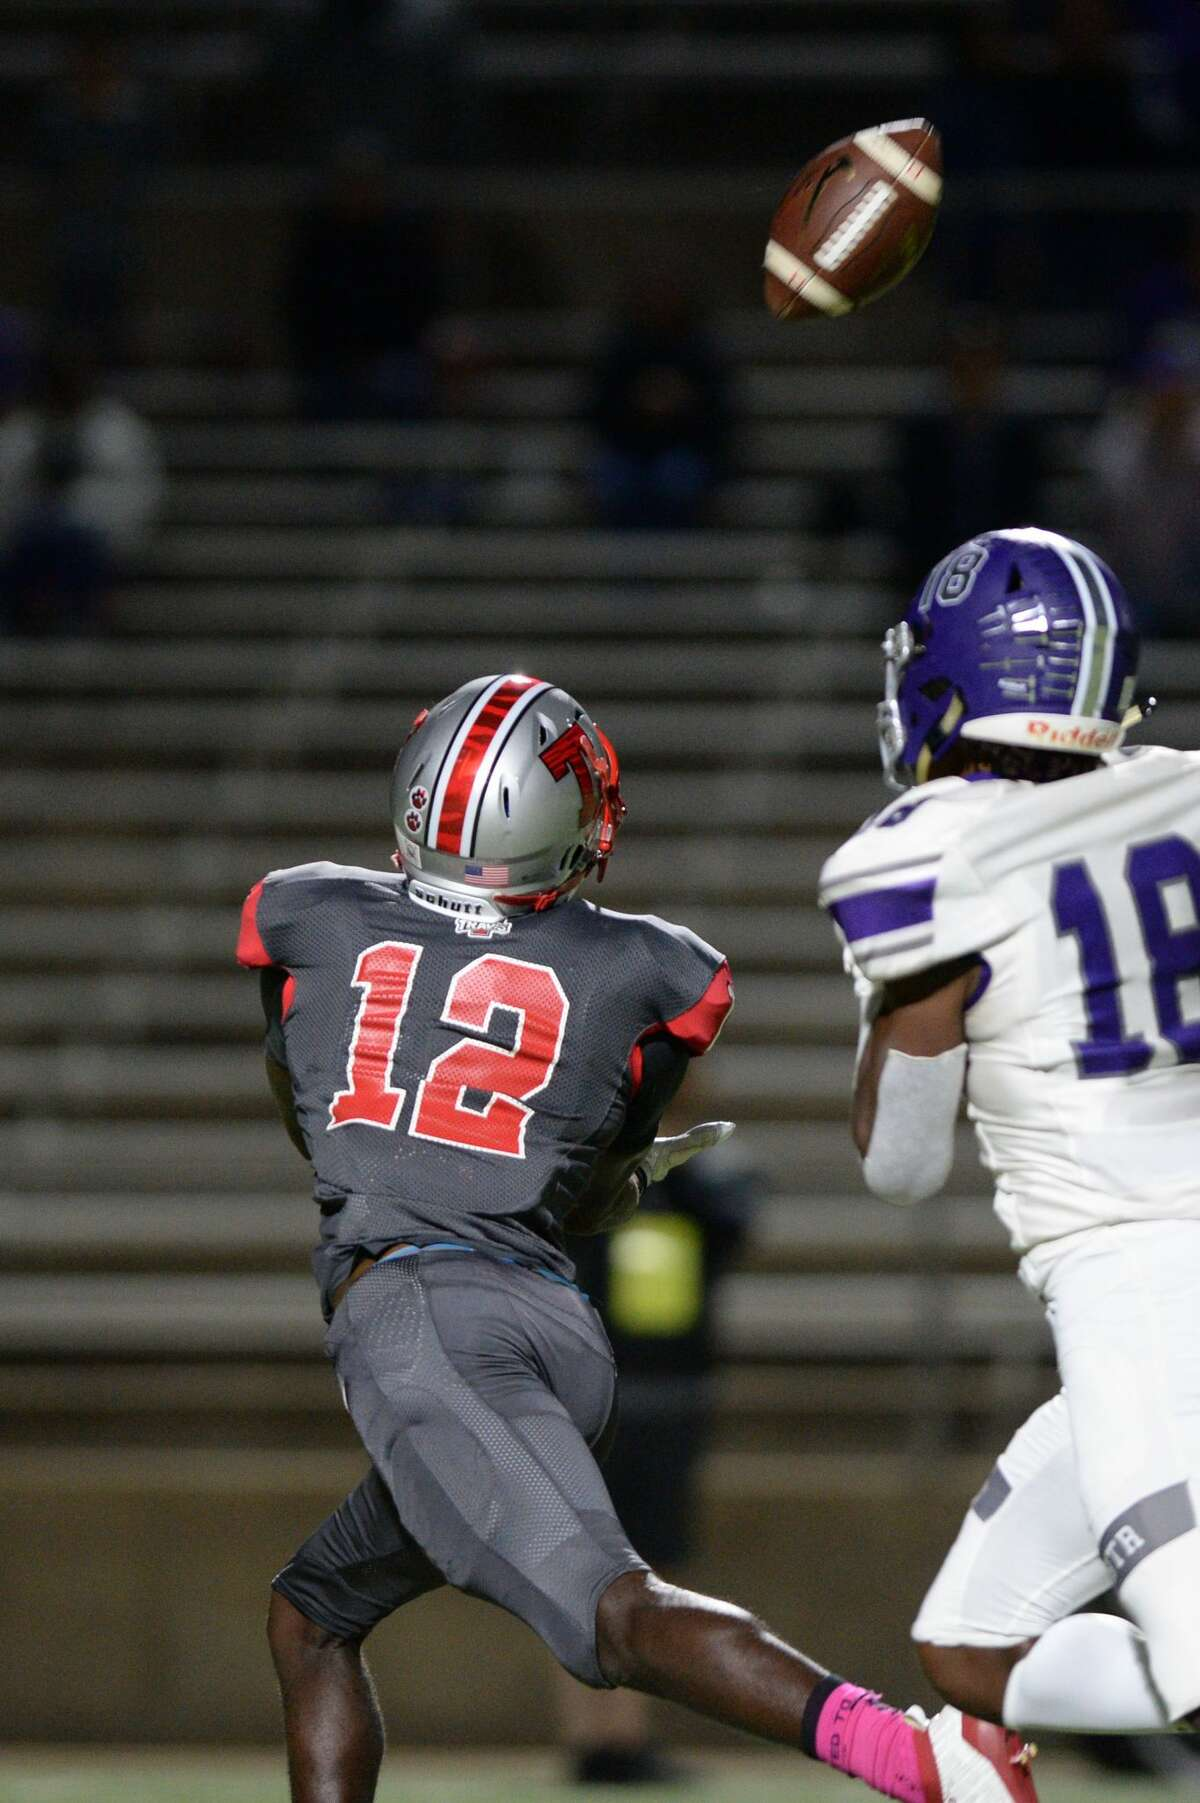 Mike Samba (12) of Travis makes a first down reception during the second quarter of a 6A Region III District 20 football game between the Ridge Point Panthers and Travis Tigers on Thursday, October 17, 2019 at Mercer Stadium, Sugar Land, TX.